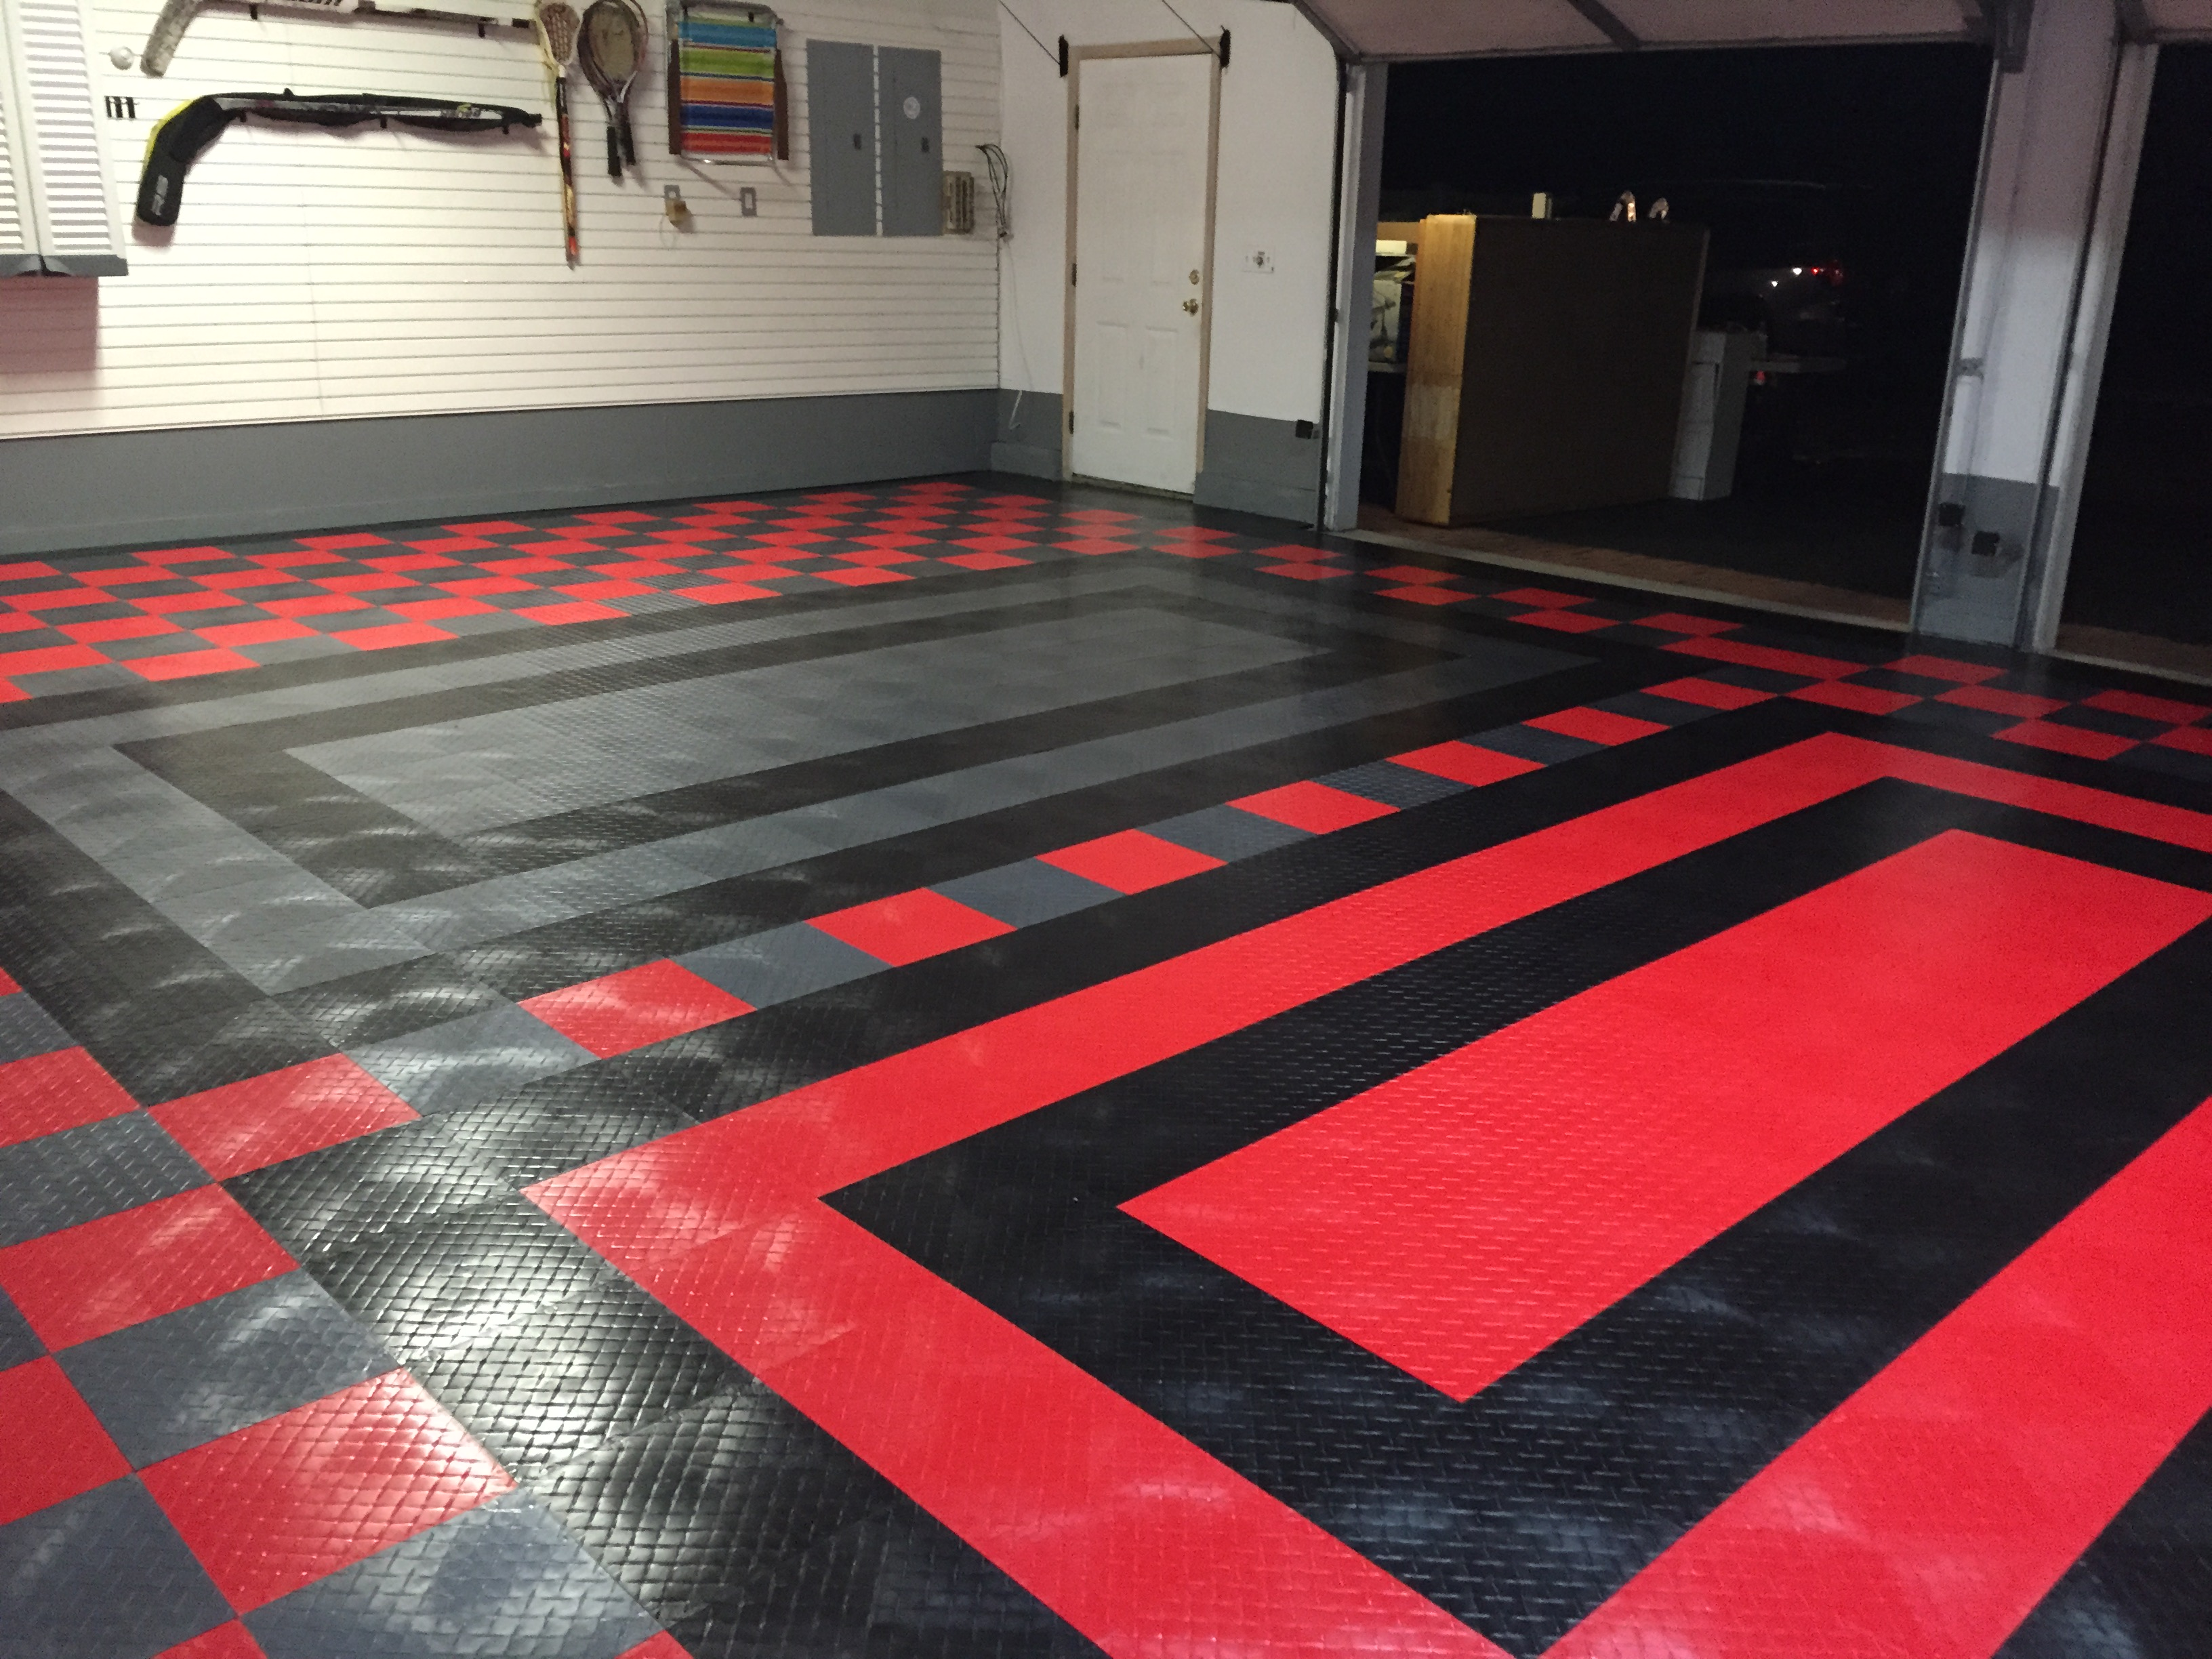 Installing racedeck garage flooring page 4 name img3333g views 1554 size 148 mb dailygadgetfo Image collections